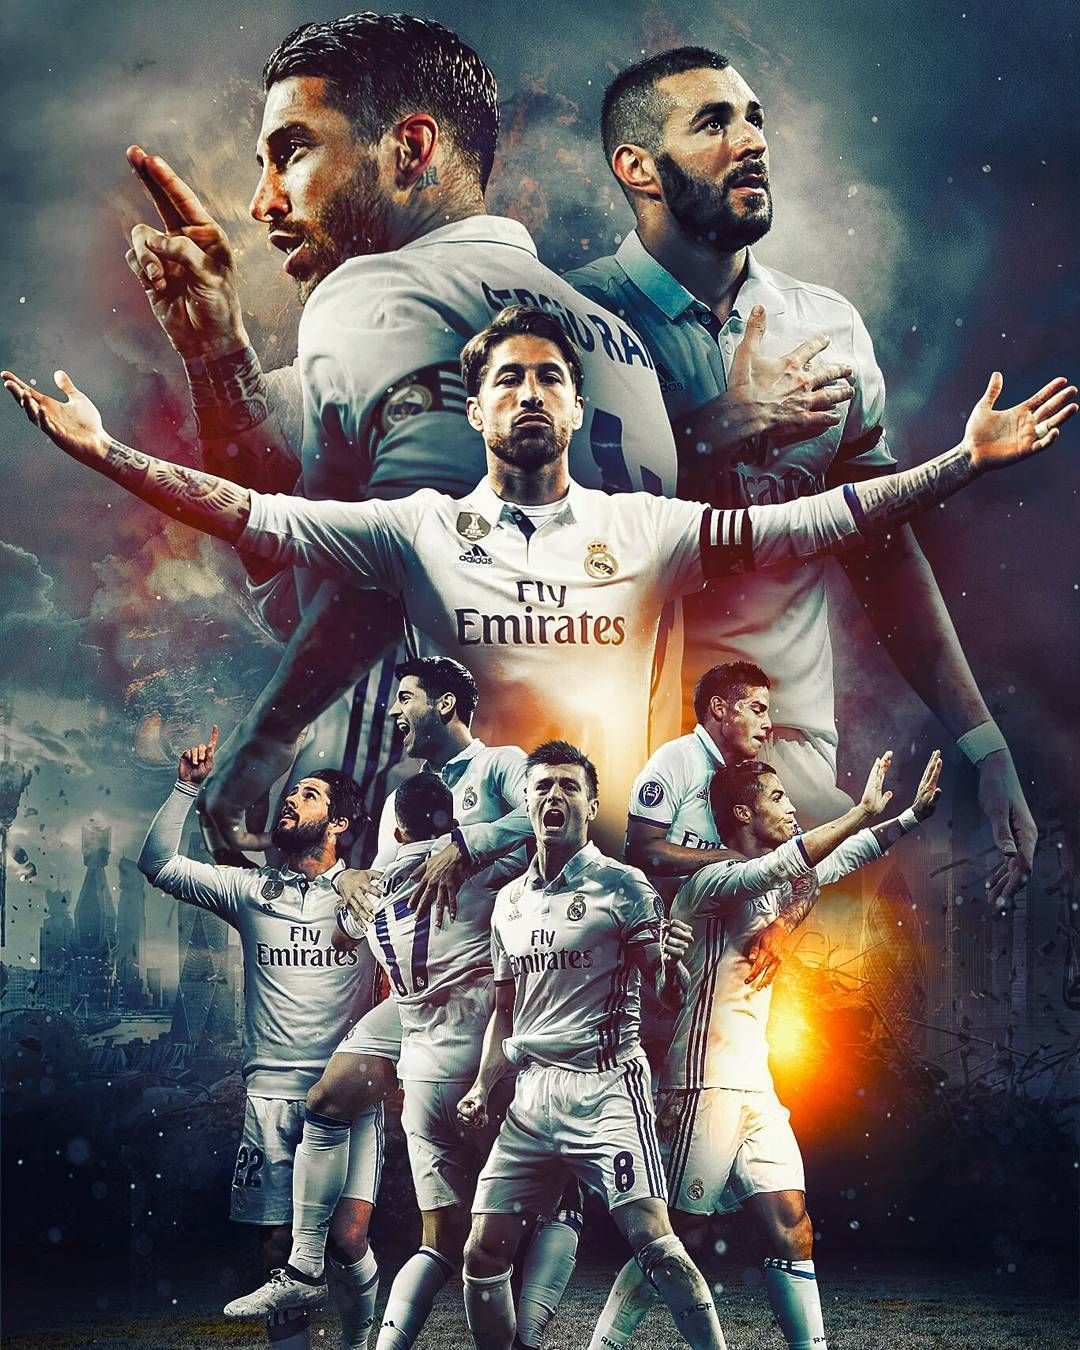 Real Madrid - Android, iPhone, Desktop HD Backgrounds / Wallpapers (1080p, 4k) (253454) - Sports